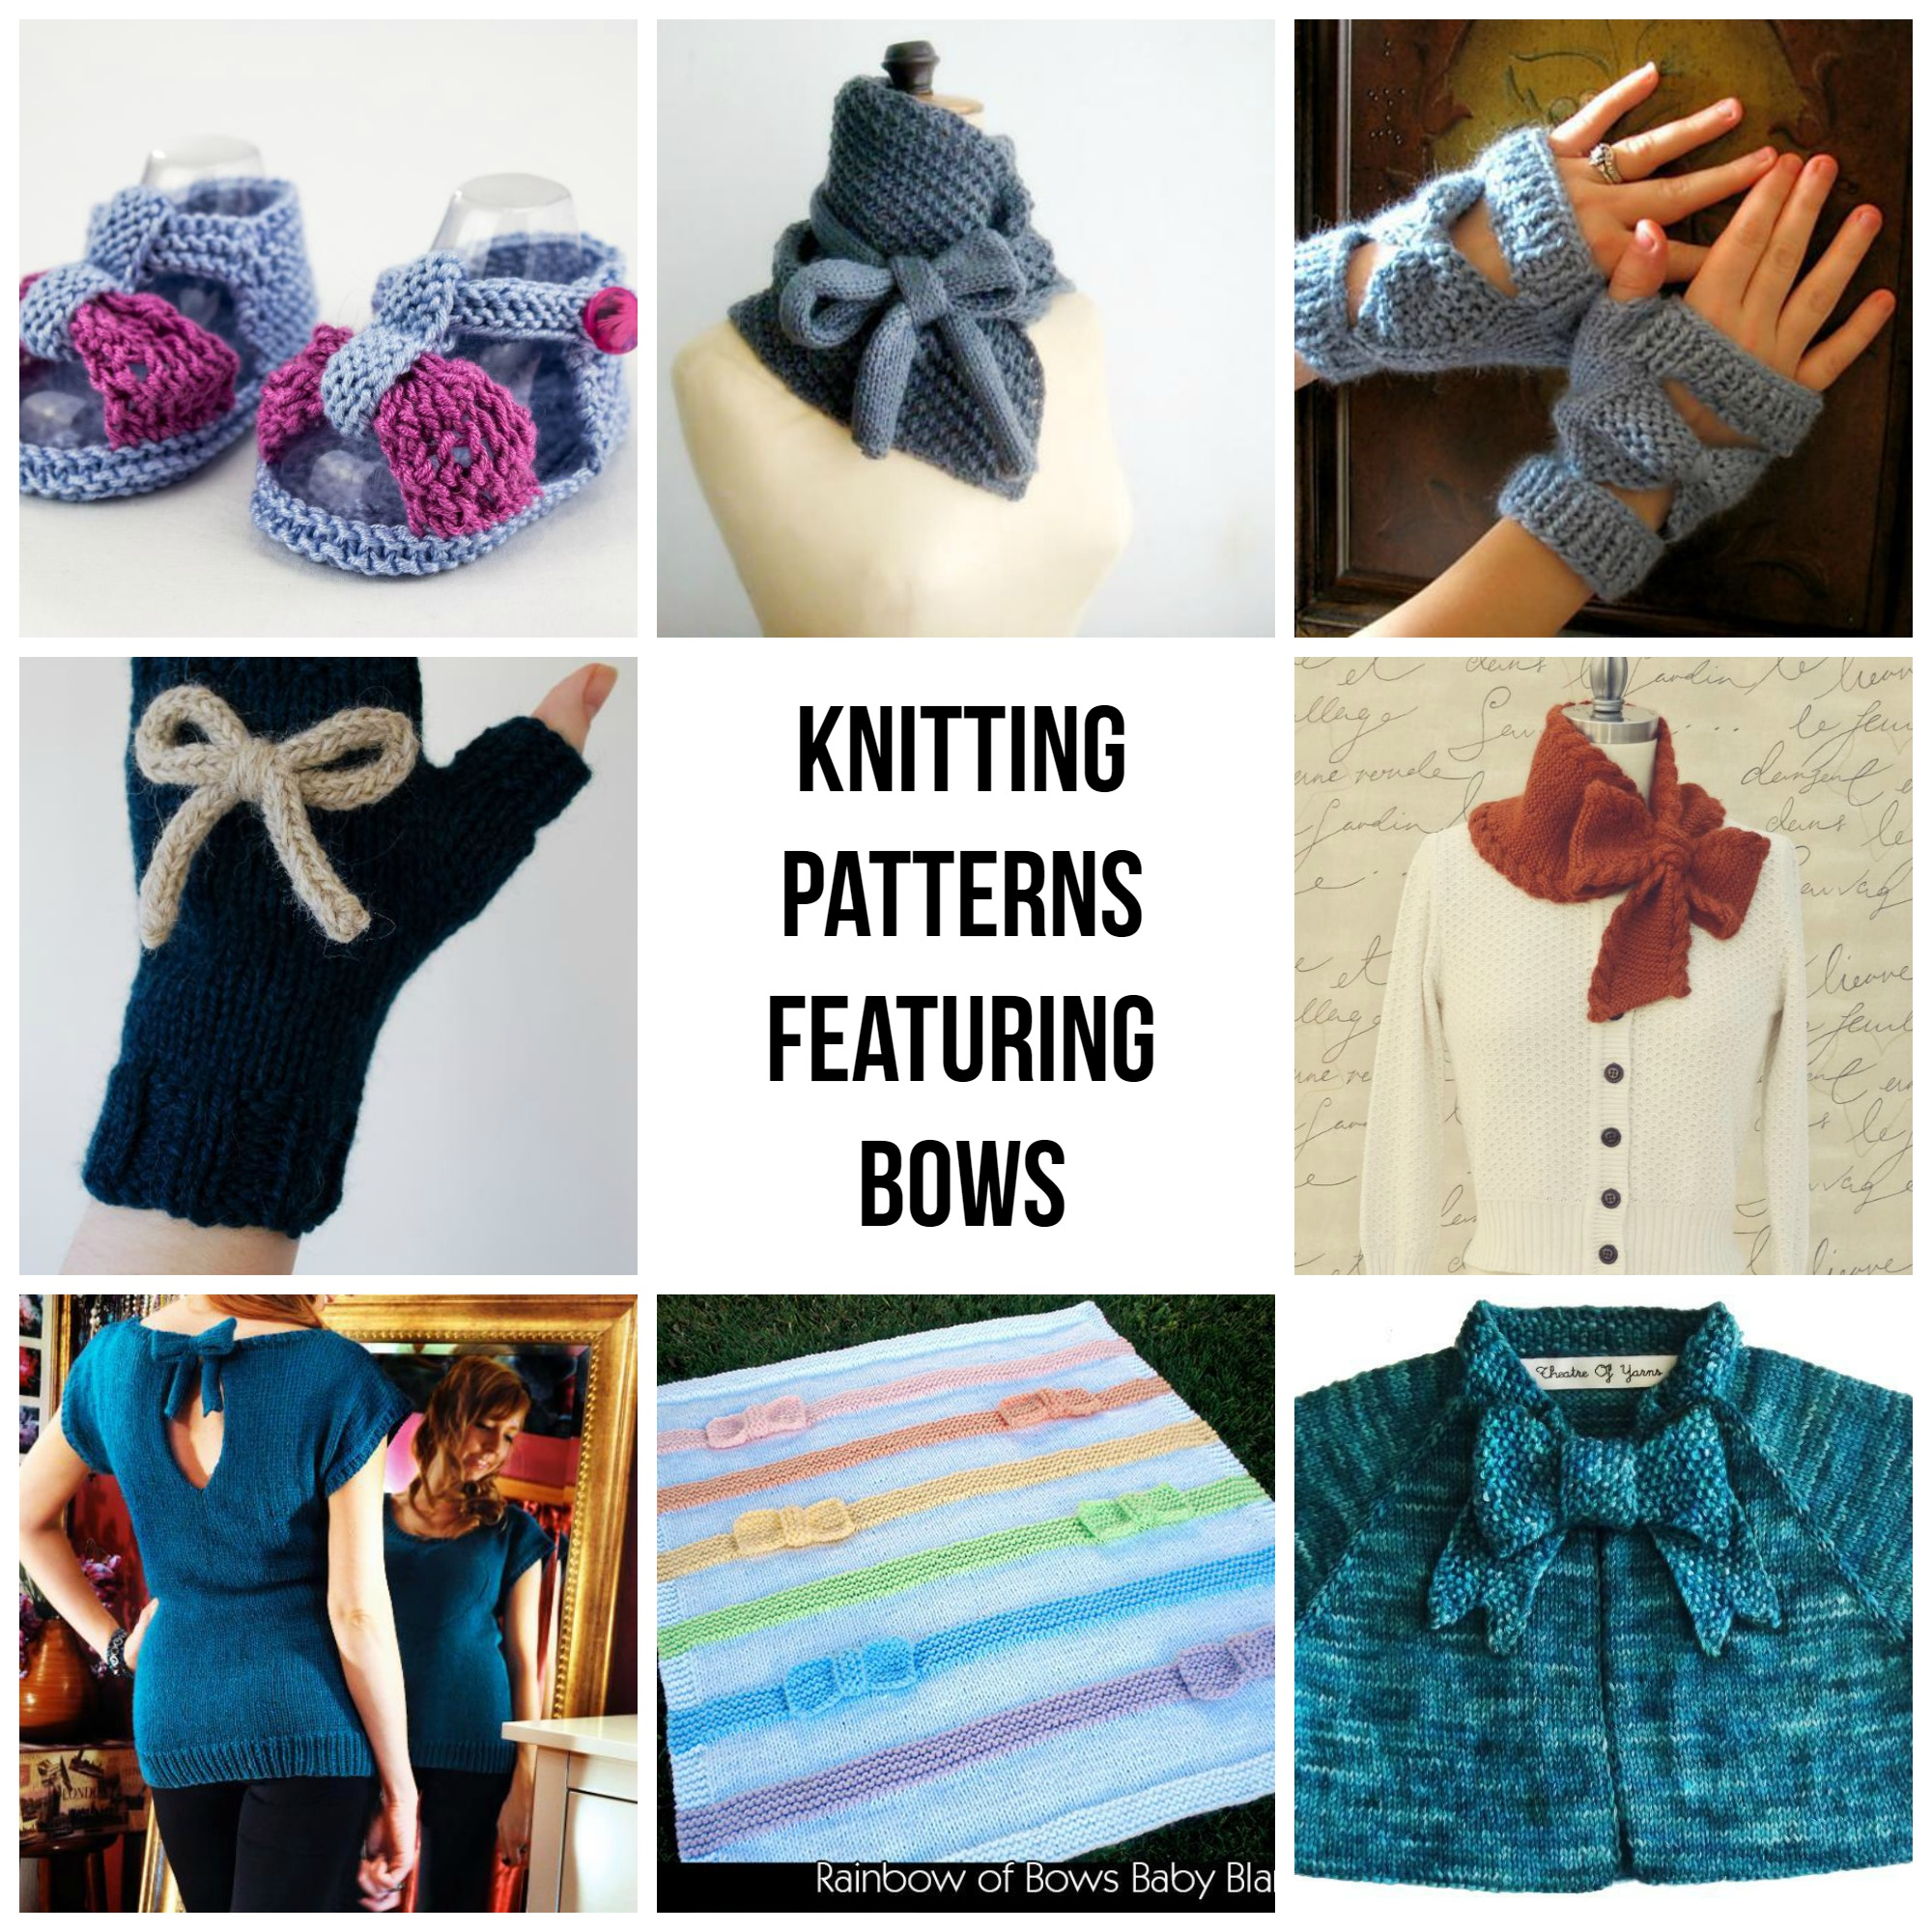 Knitting Patterns Featuring Bows